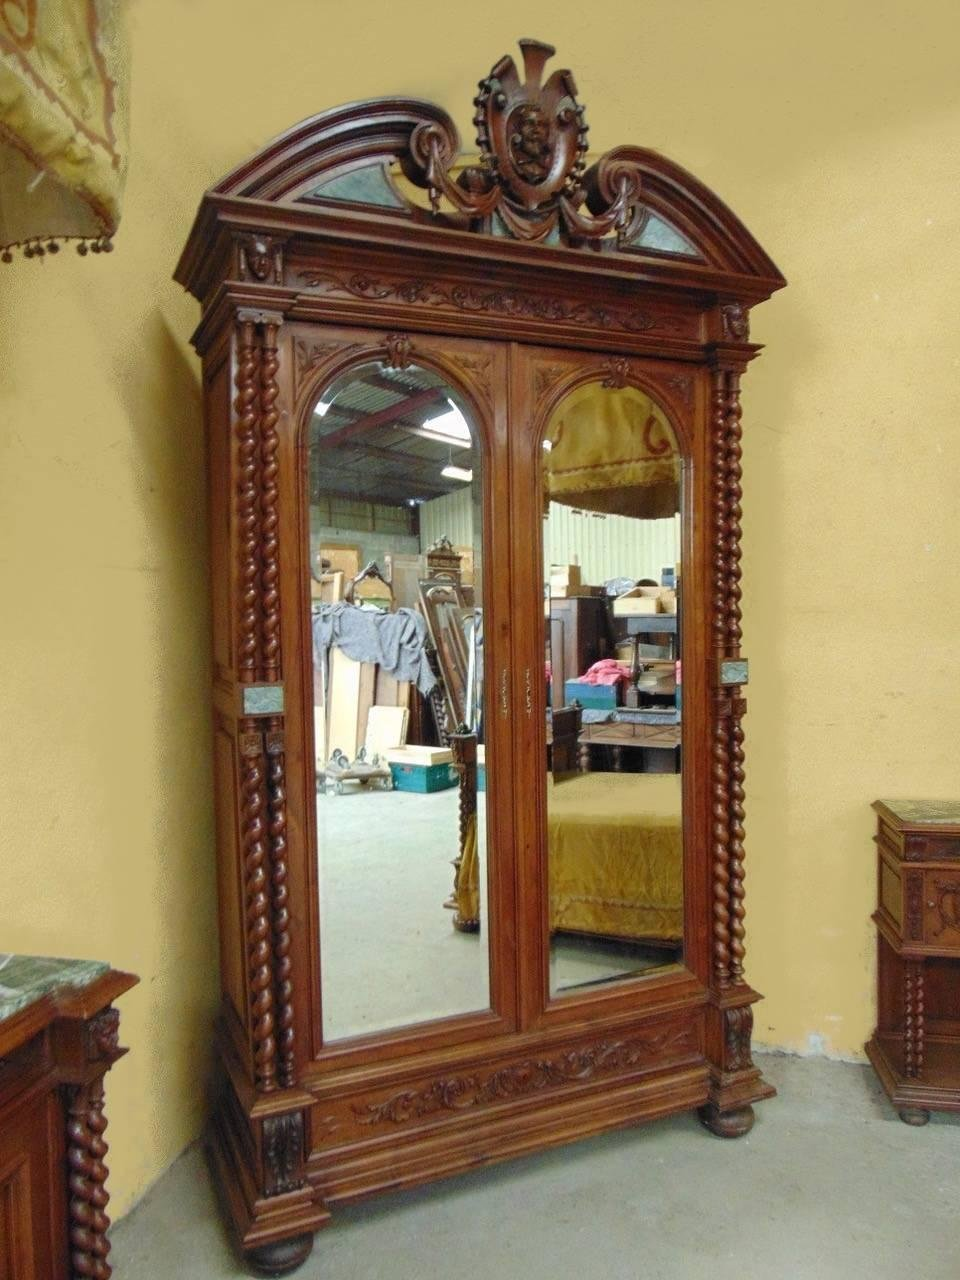 Best Renaissance Revival Bedroom Set Circa 1900 For Sale At With Pictures